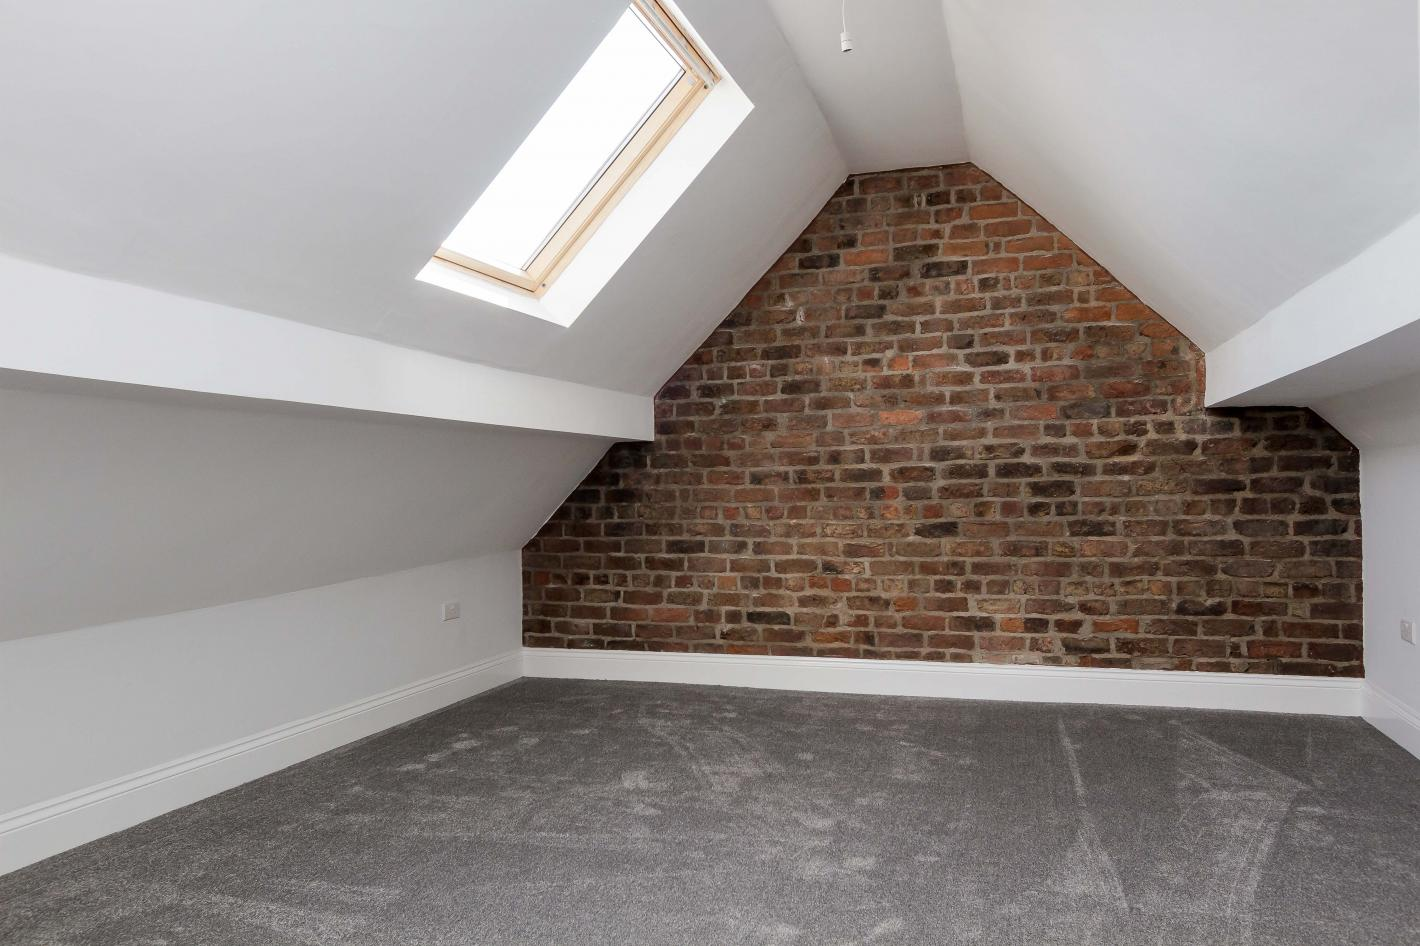 large bedroom in buy to let property. Attic style conversion with one brick wall, white walls and grey slate flooring